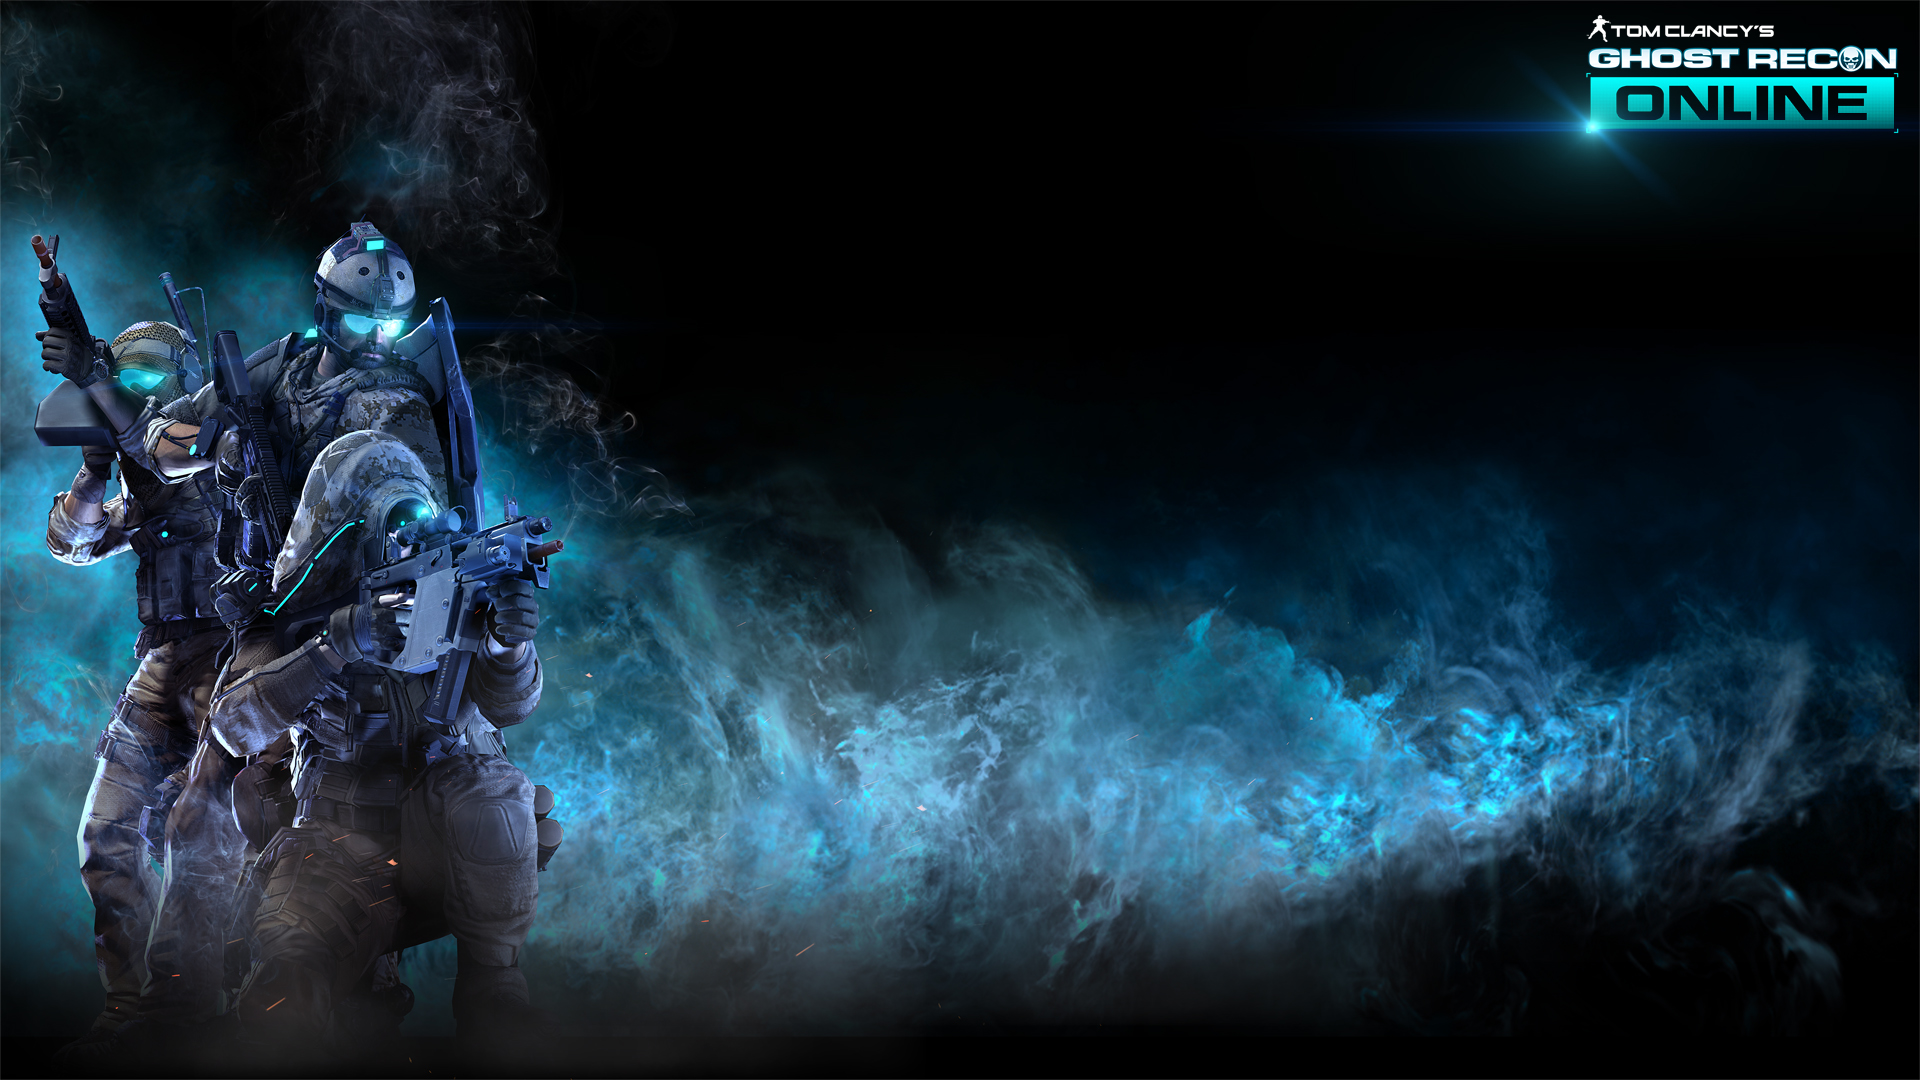 2013 Tom Clancy s Ghost Recon Online Wallpapers   HD Wallpapers. Tom Clancy Wallpaper   WallpaperSafari